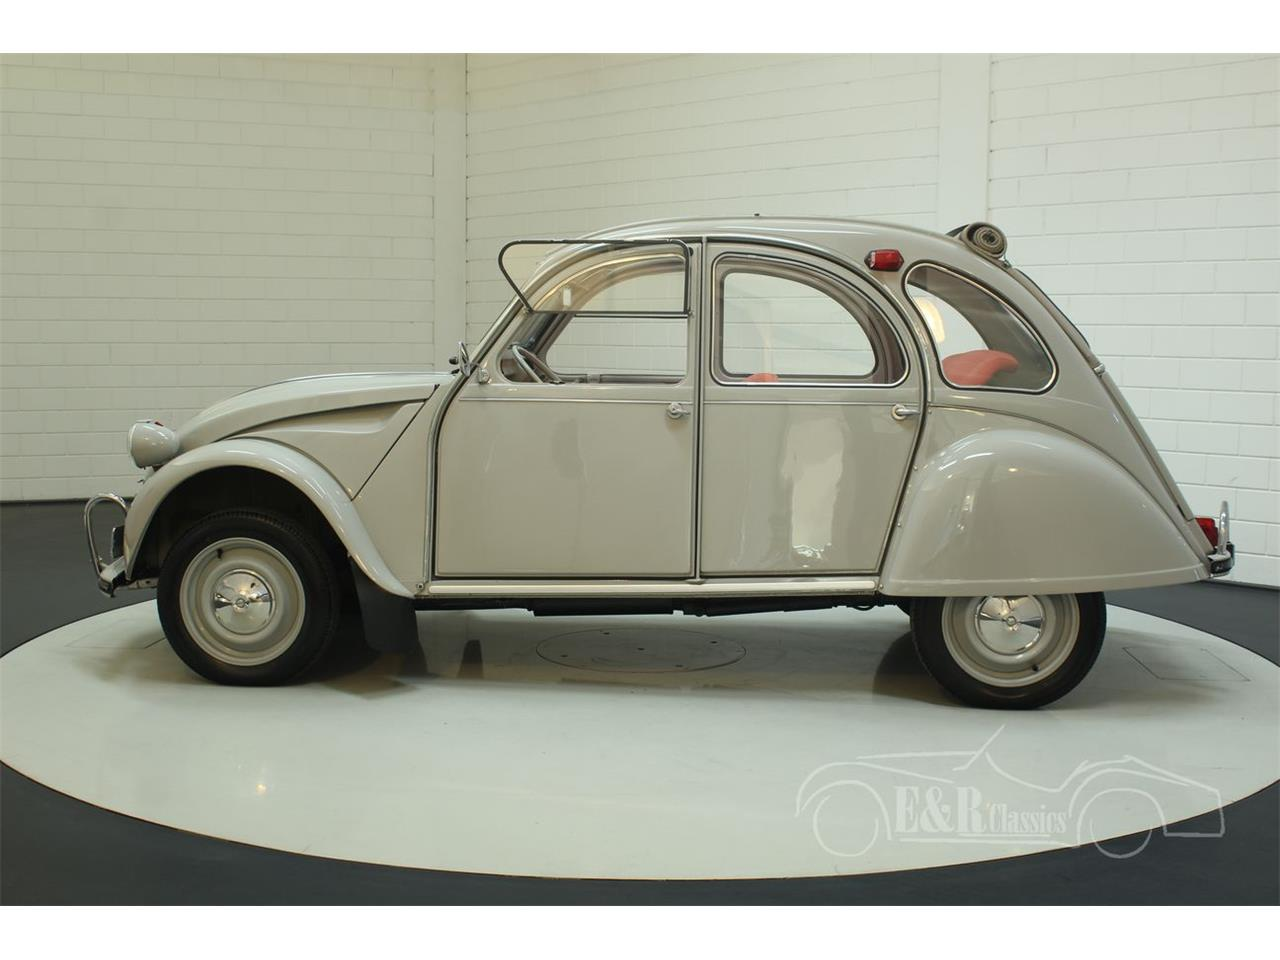 Large Picture of '66 Citroen 2CV located in Waalwijk - Keine Angabe - - $22,550.00 Offered by E & R Classics - PGSV